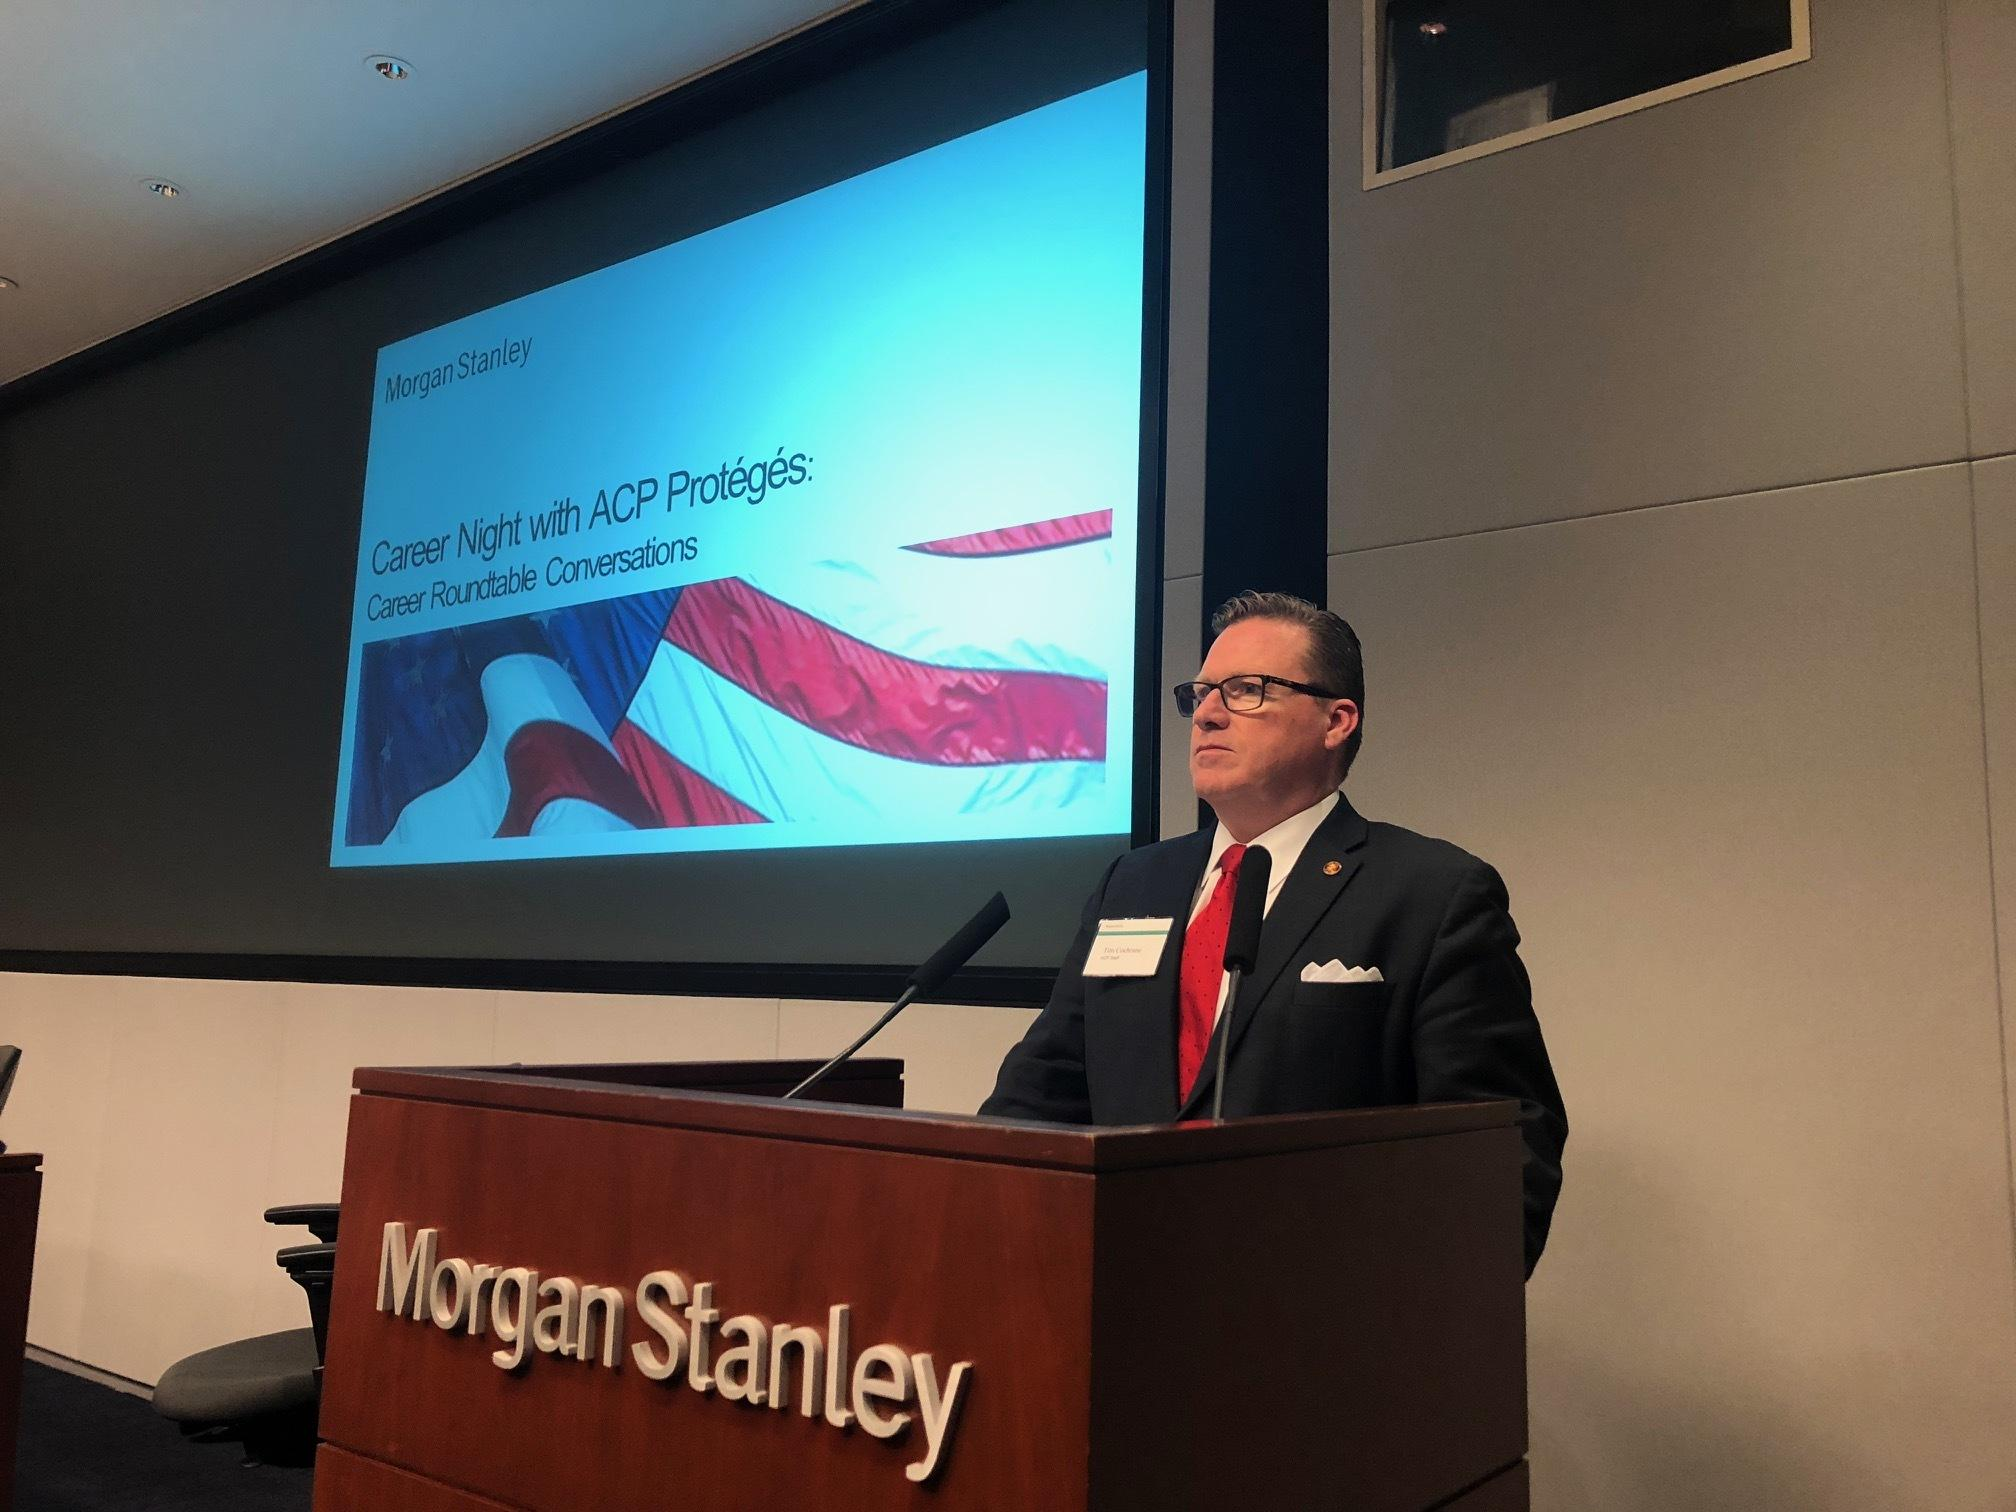 Morgan Stanley Hosts Recruiting Event in Baltimore and New